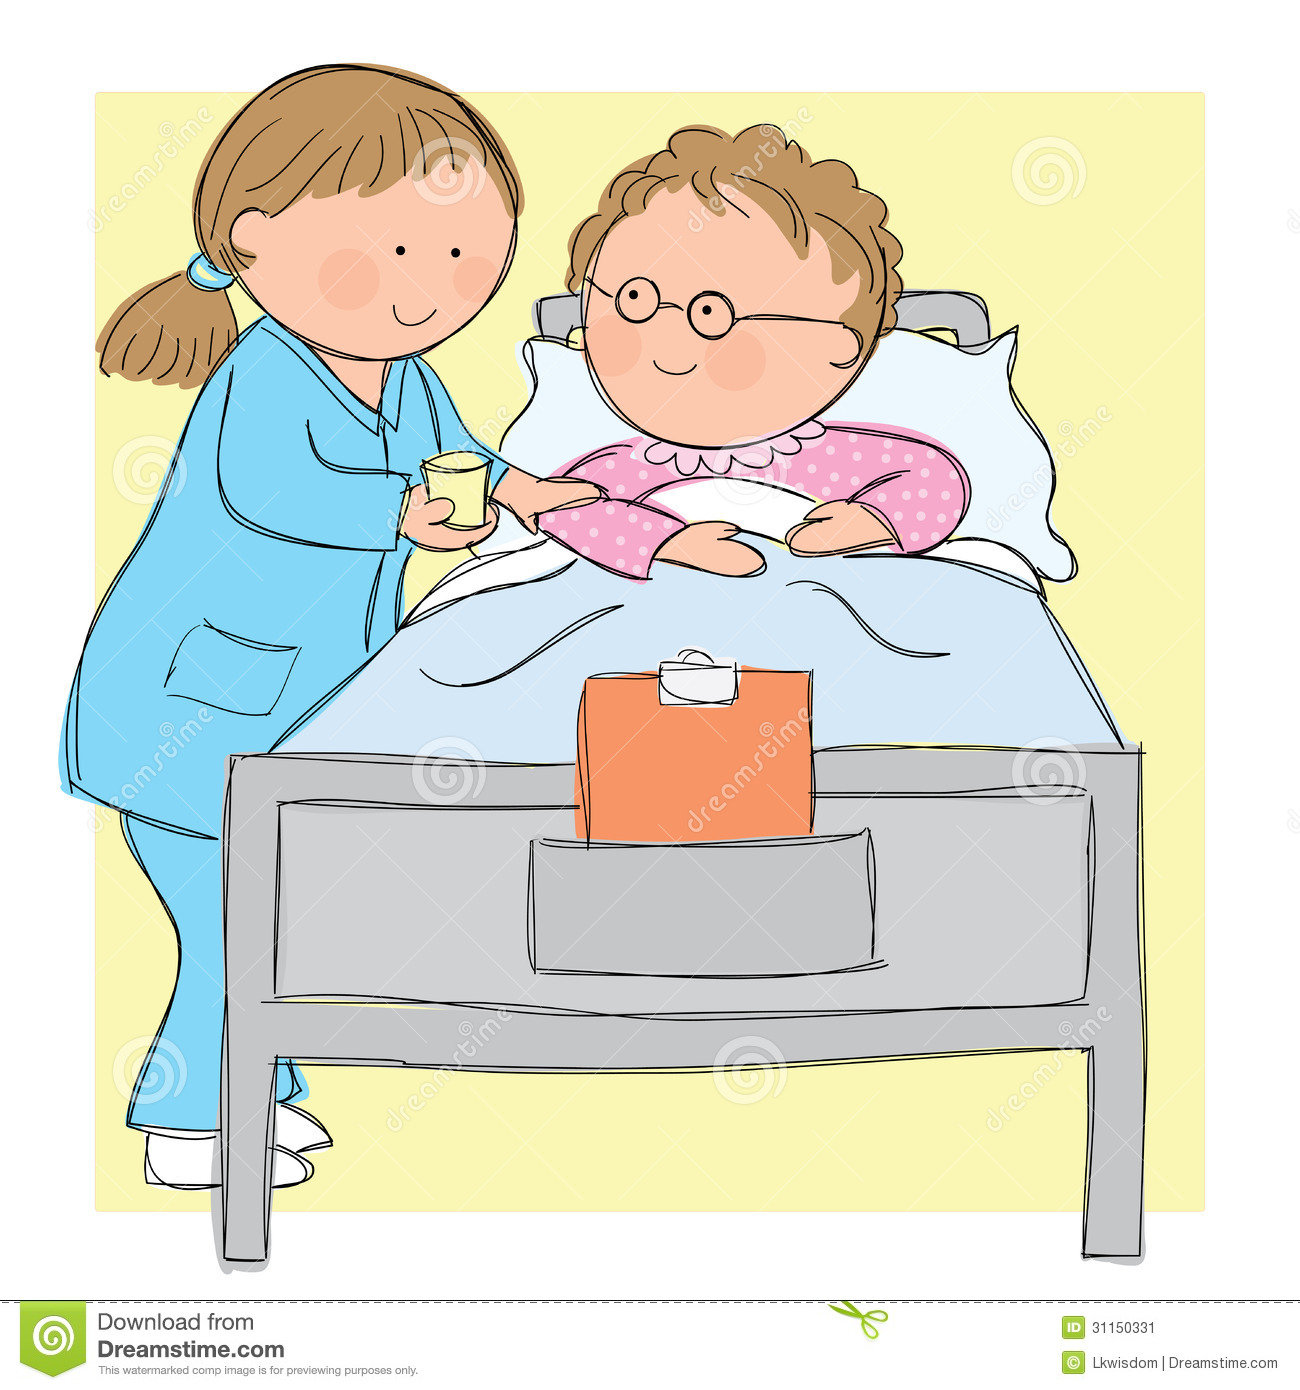 collection of high. Caring clipart caring person